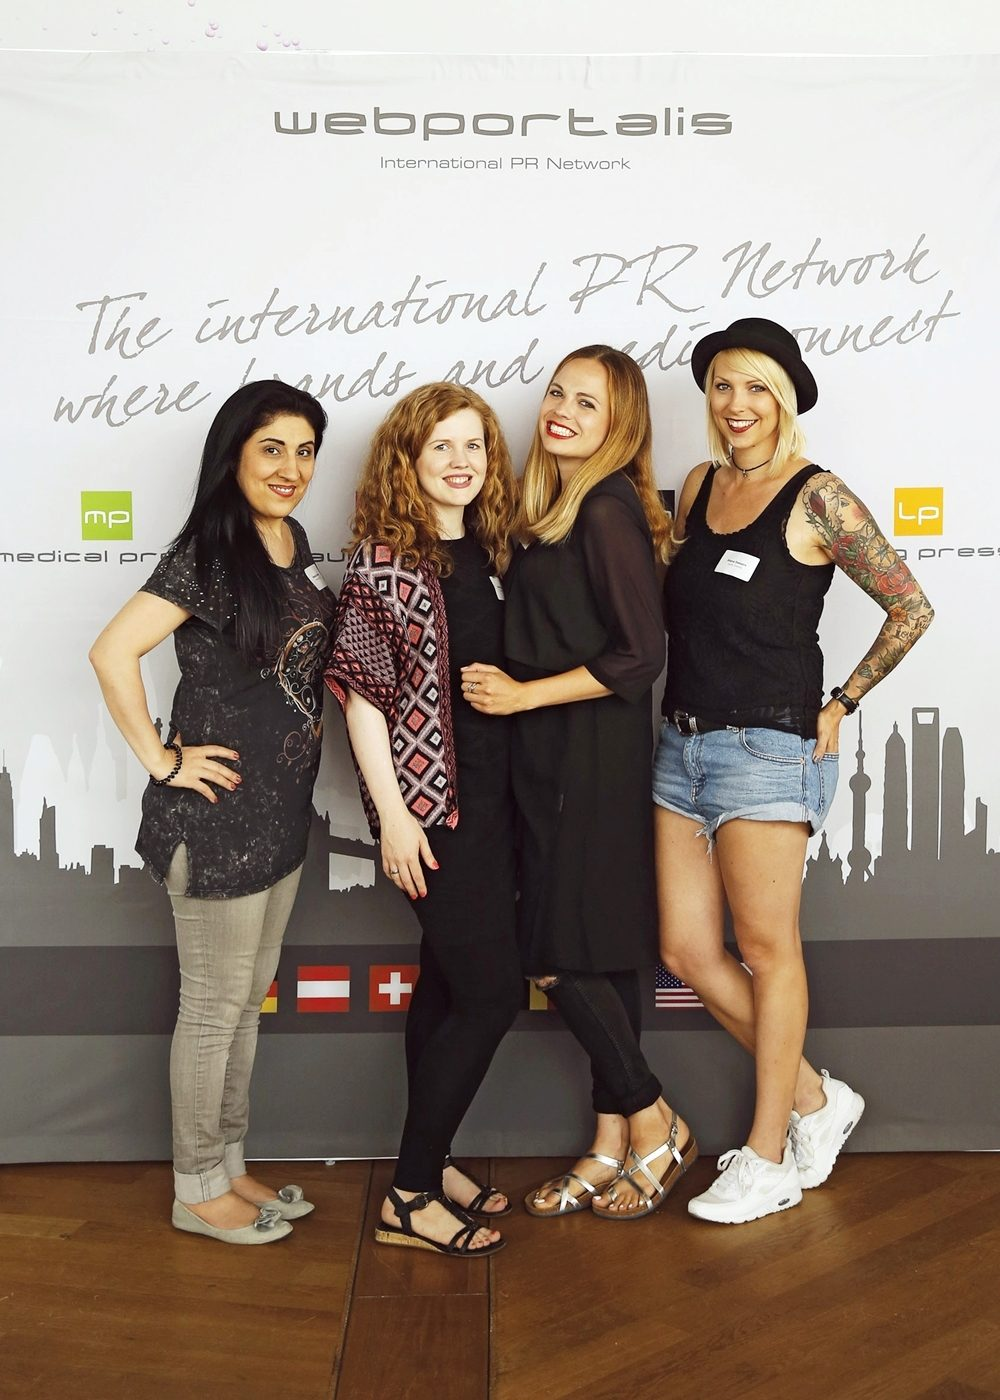 fsbpev-38.038b-beautypress---bp-bloggereventg-koeln-072016